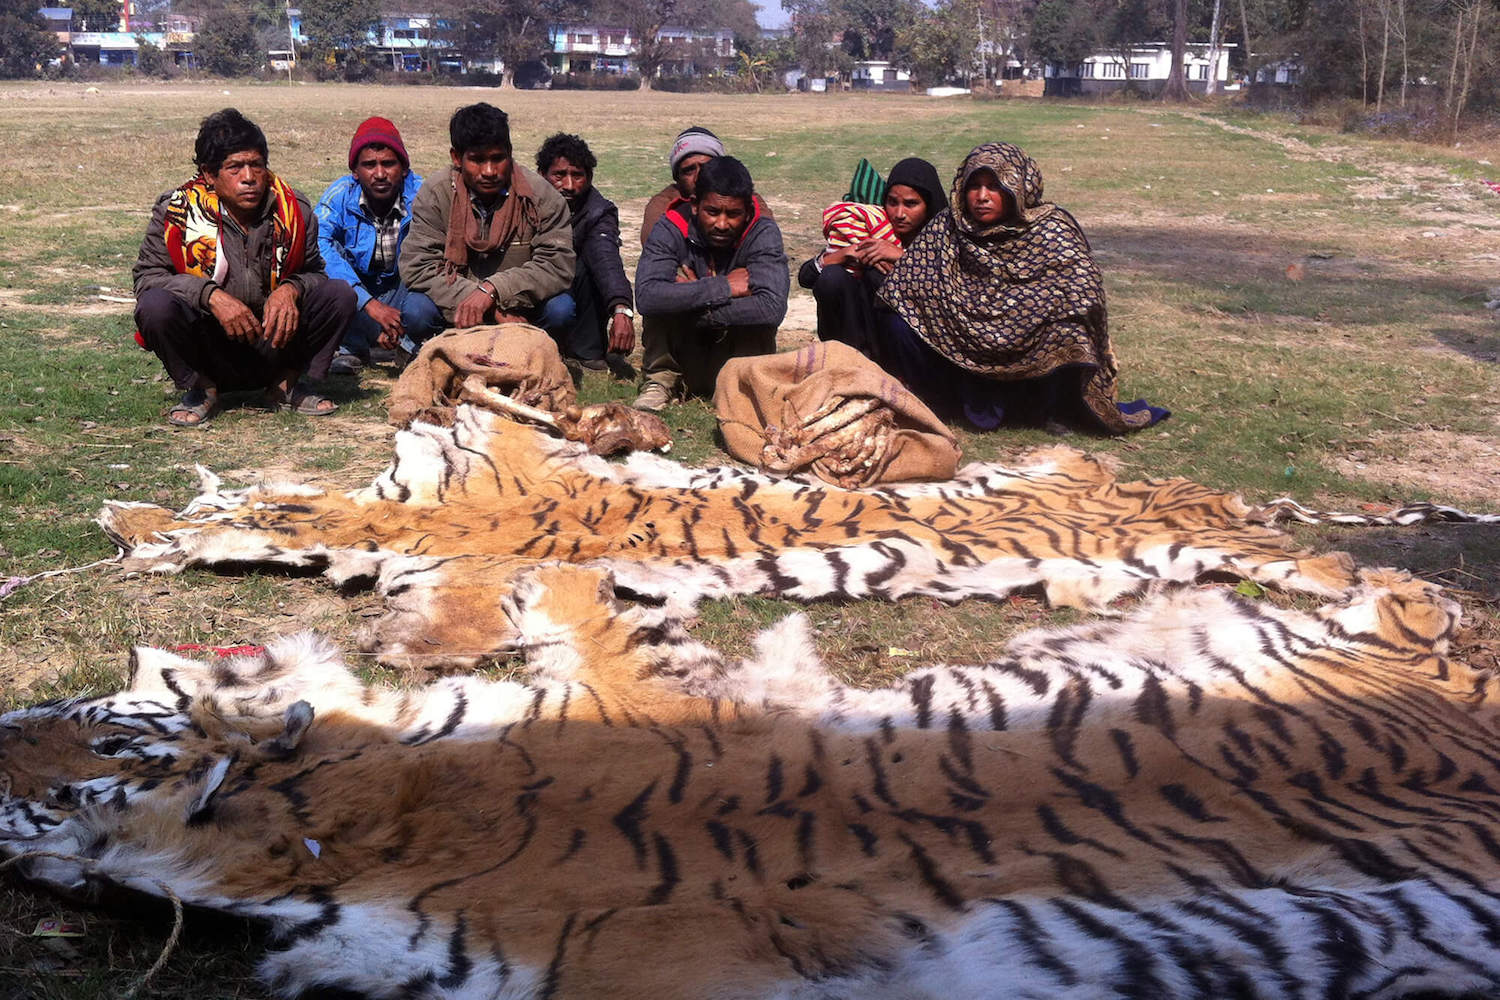 Lax laws make Nepal haven for tiger poachers